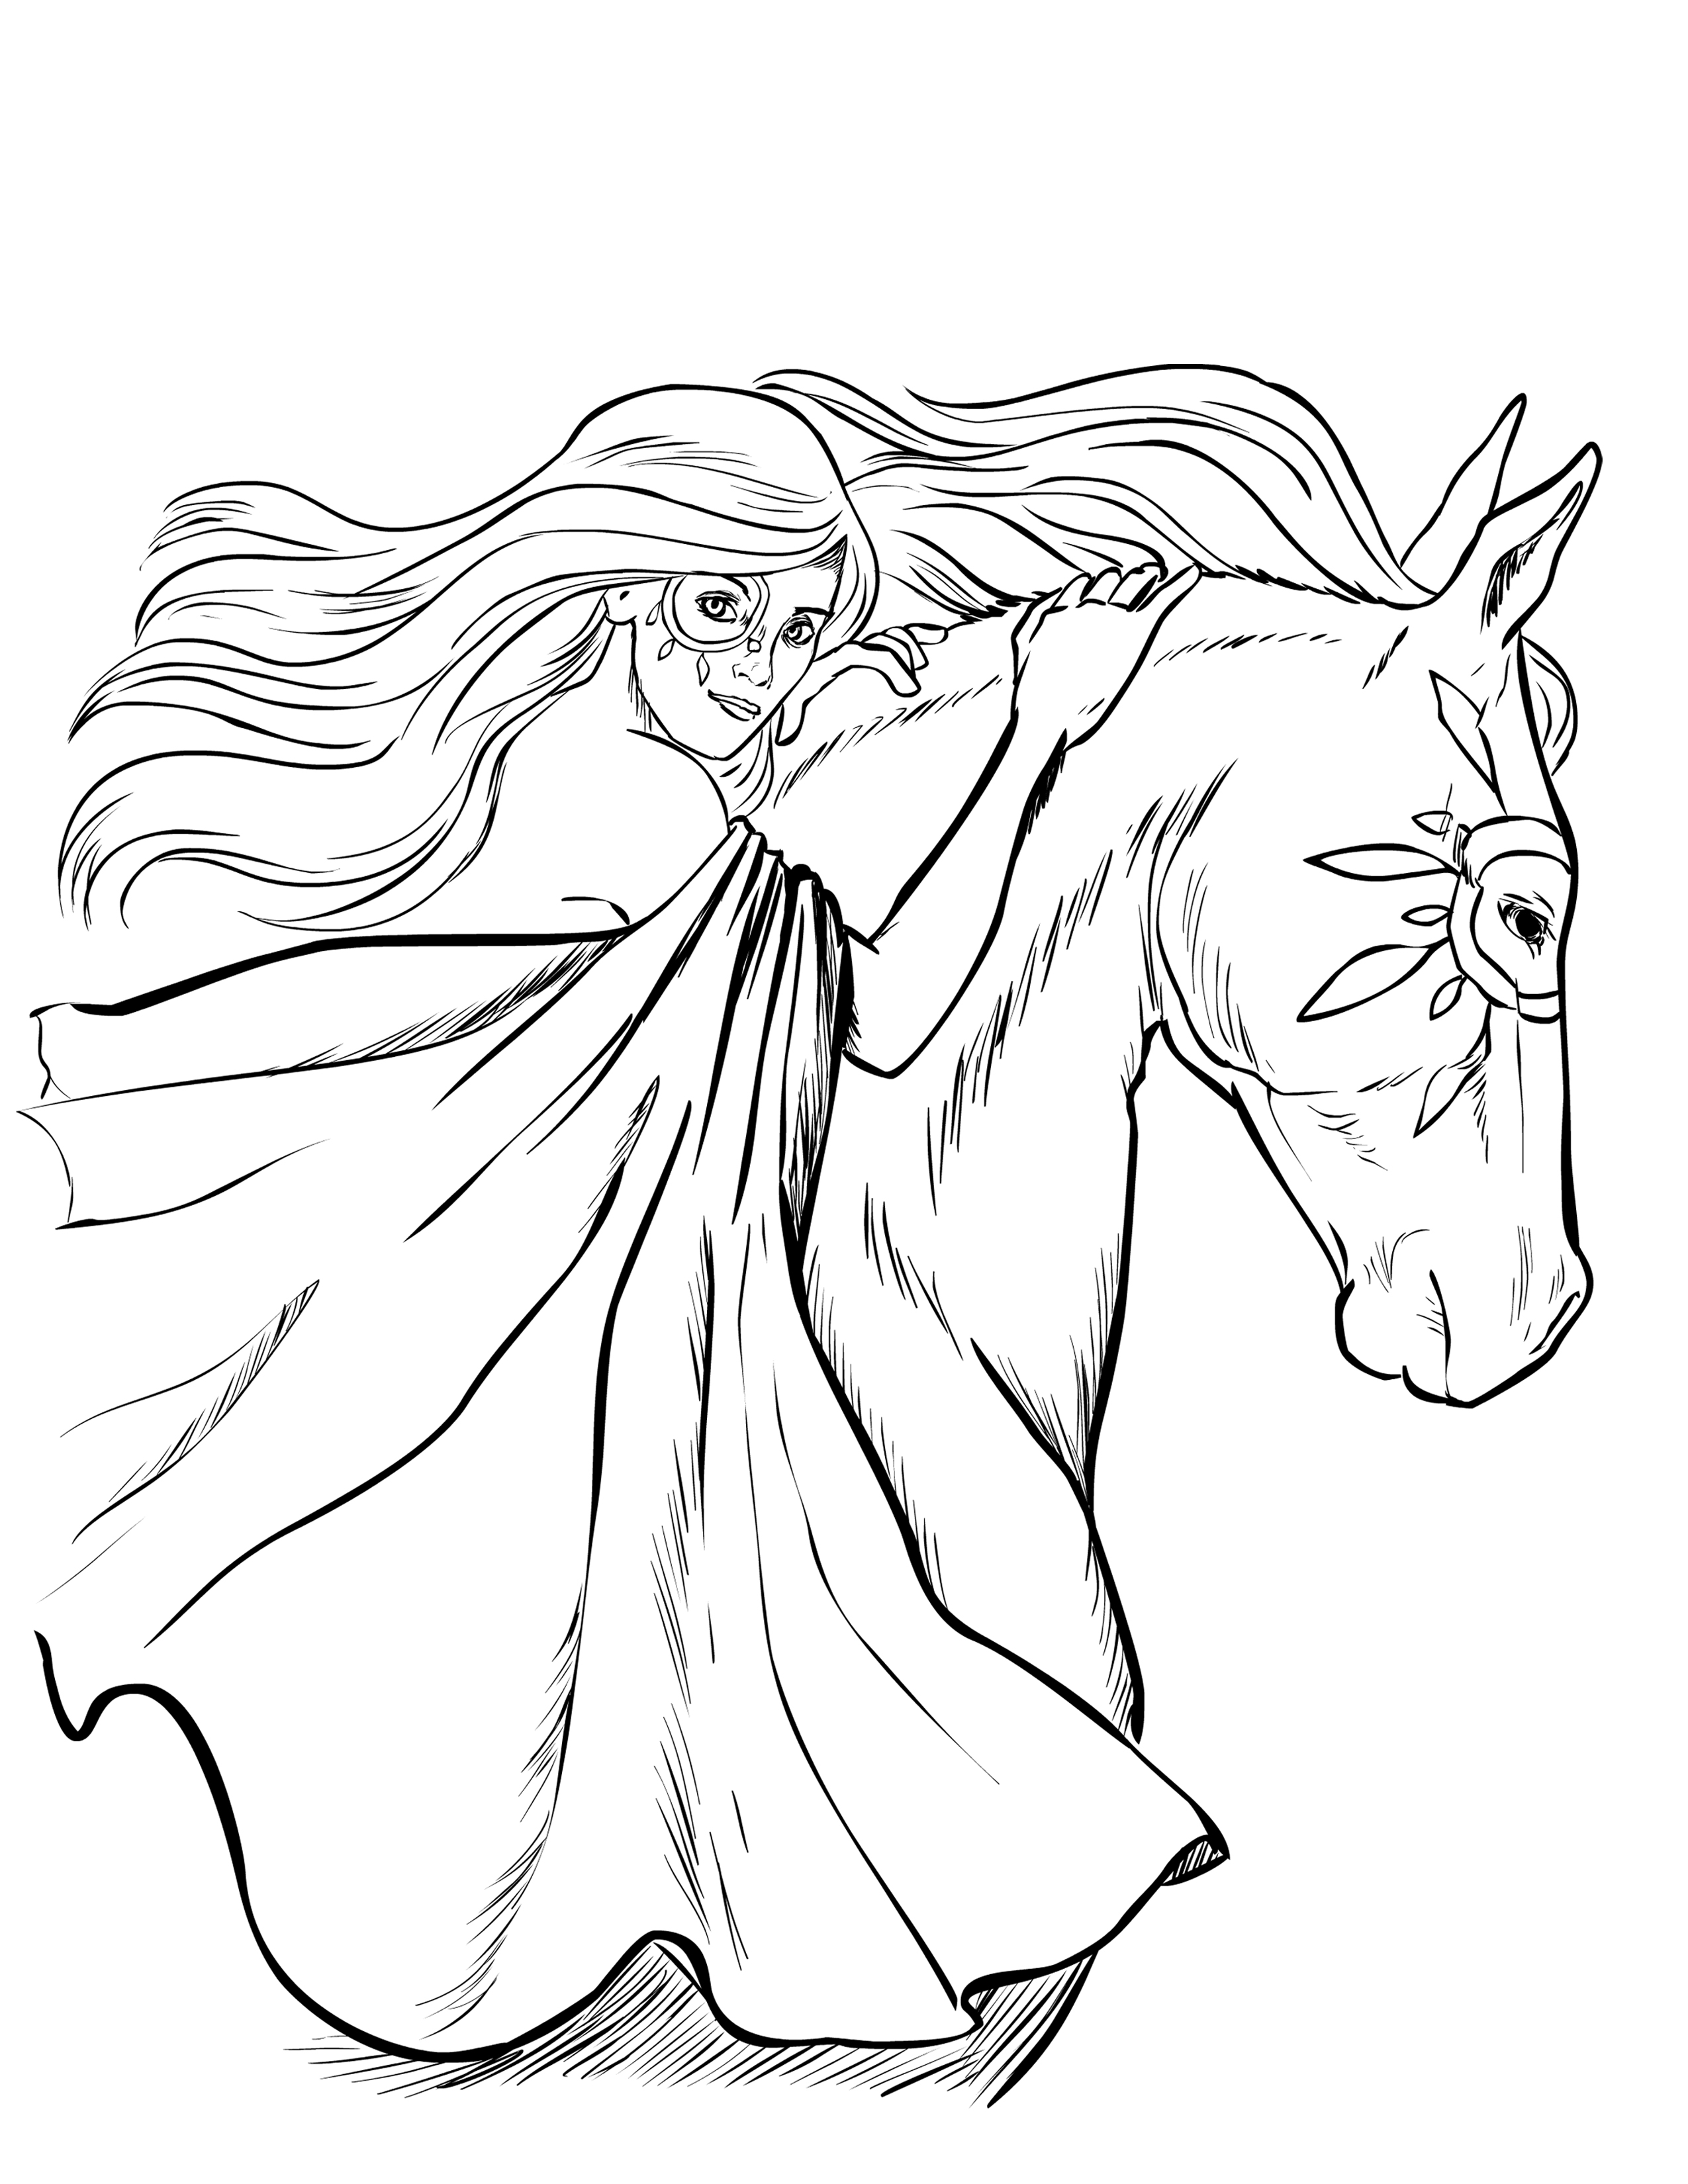 coloring page of horse horse with patterns free to color for children horses horse of coloring page